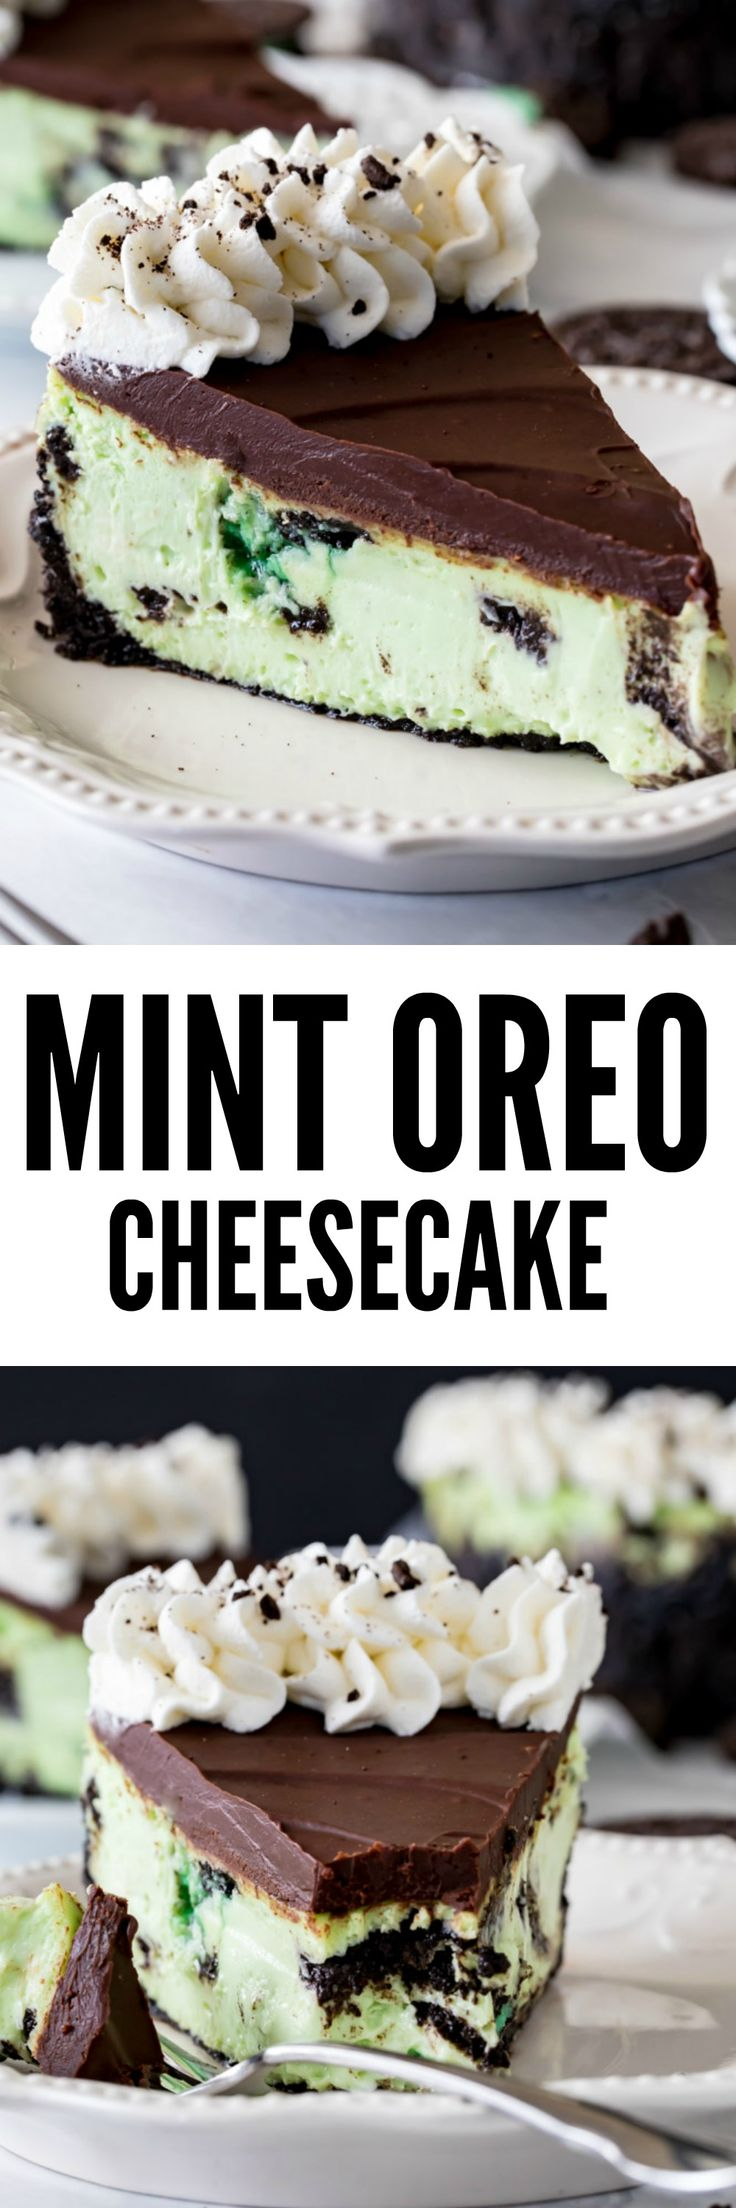 A creamy Mint Oreo Cheesecake served on a crisp Oreo cookie crust and made with no waterbath required! Top it off with a dark chocolate ganache and whipped cream for a decadent mint and chocolate treat!